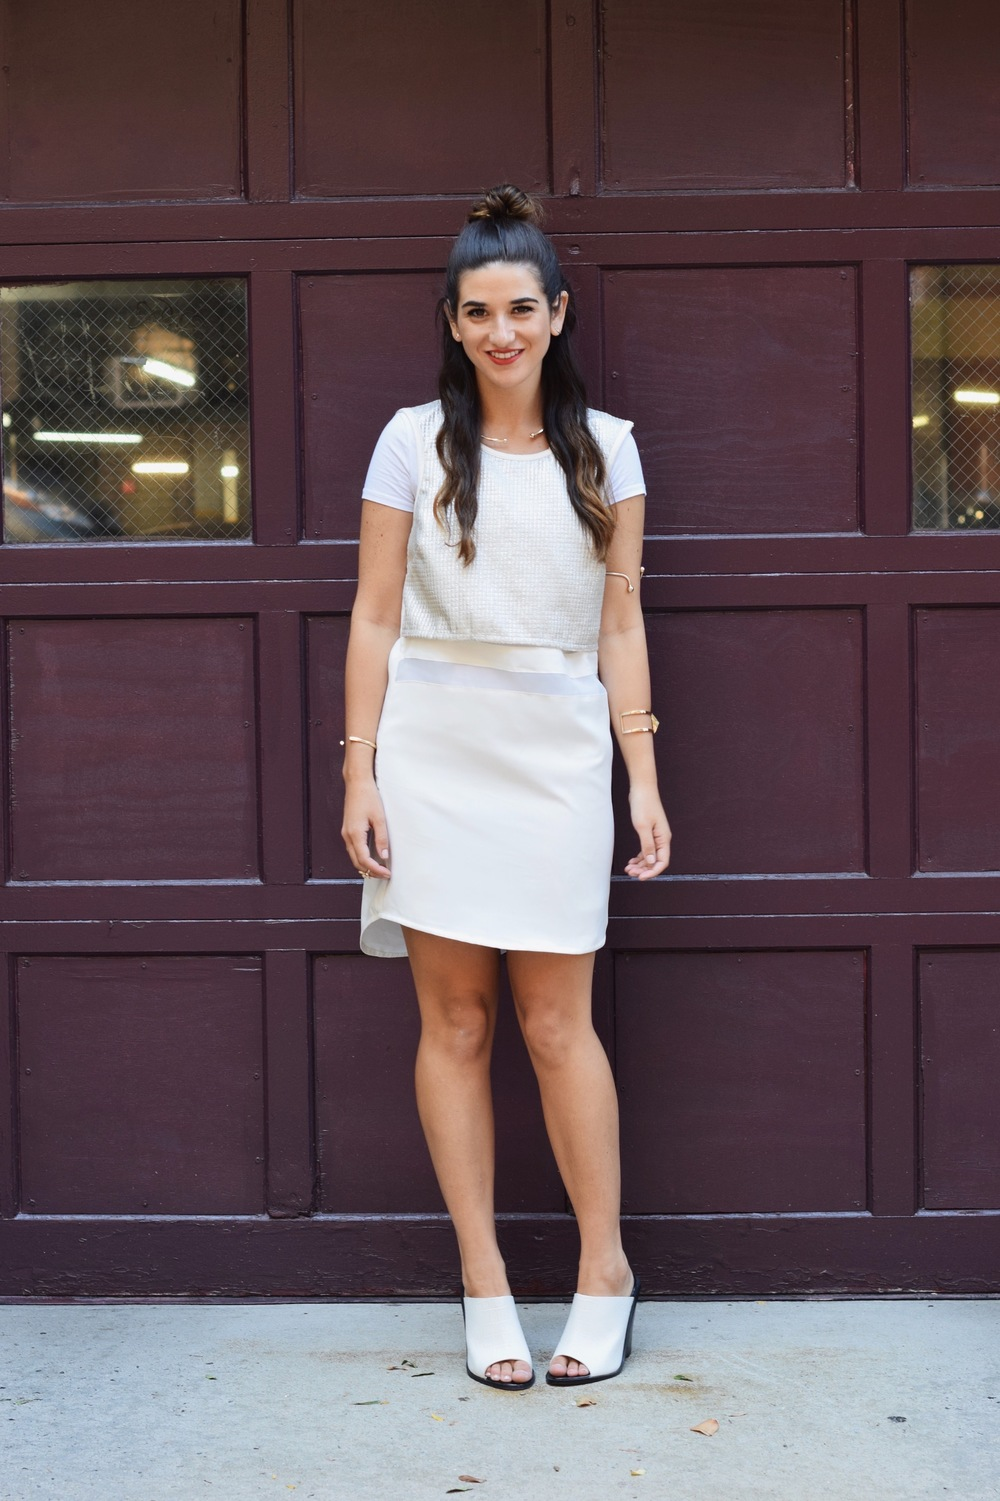 All White Look Gold Jewelry Louboutins & Love Fashion Blog Esther Santer Street Style NYC Blogger Lydell NYC Lumier Bariano Red Light PR Collab IfChic Mod Mules Topknot Hair Girl Model Photoshoot Shoes Necklace Bracelet Dress OOTD Outfit Summer Women.jpg